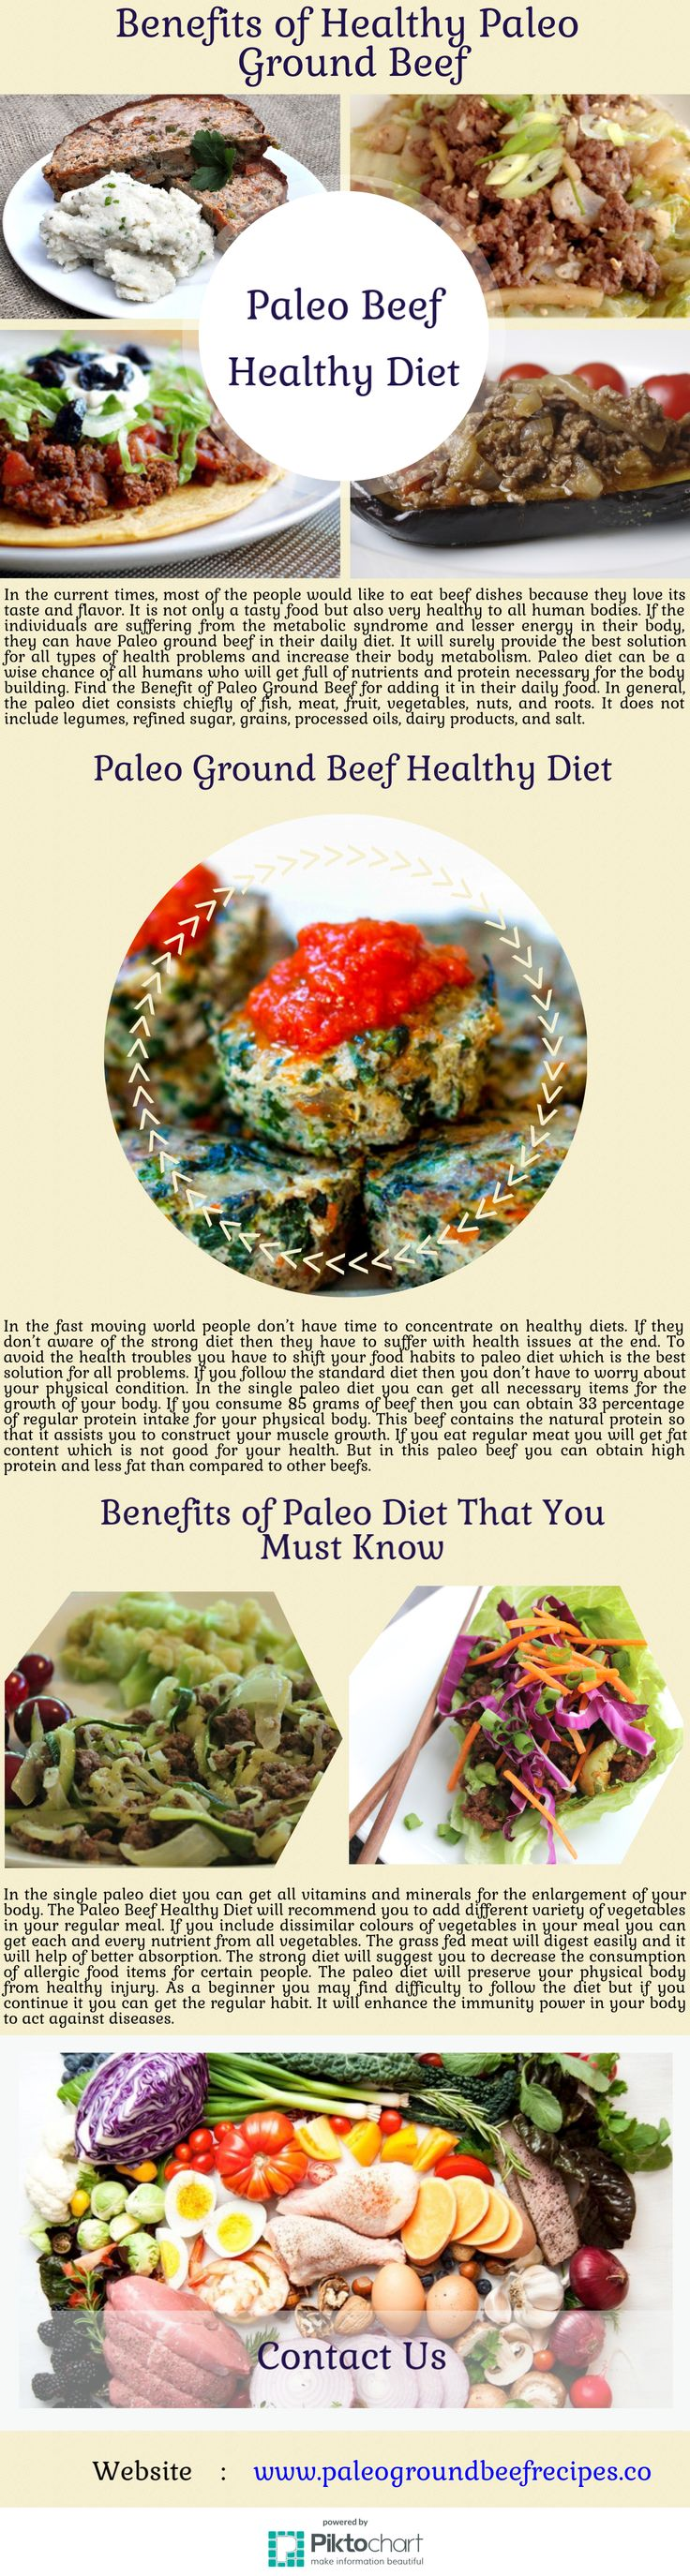 In the current times, most of the people would like to eat beef dishes because they love its taste and flavor. It is not only a tasty food but also very healthy to all human bodies. If the individuals are suffering from the metabolic syndrome and lesser energy in their body, they can have Paleo ground beef in their daily diet. It will surely provide the best solution for all types of health problems and increase their body metabolism.